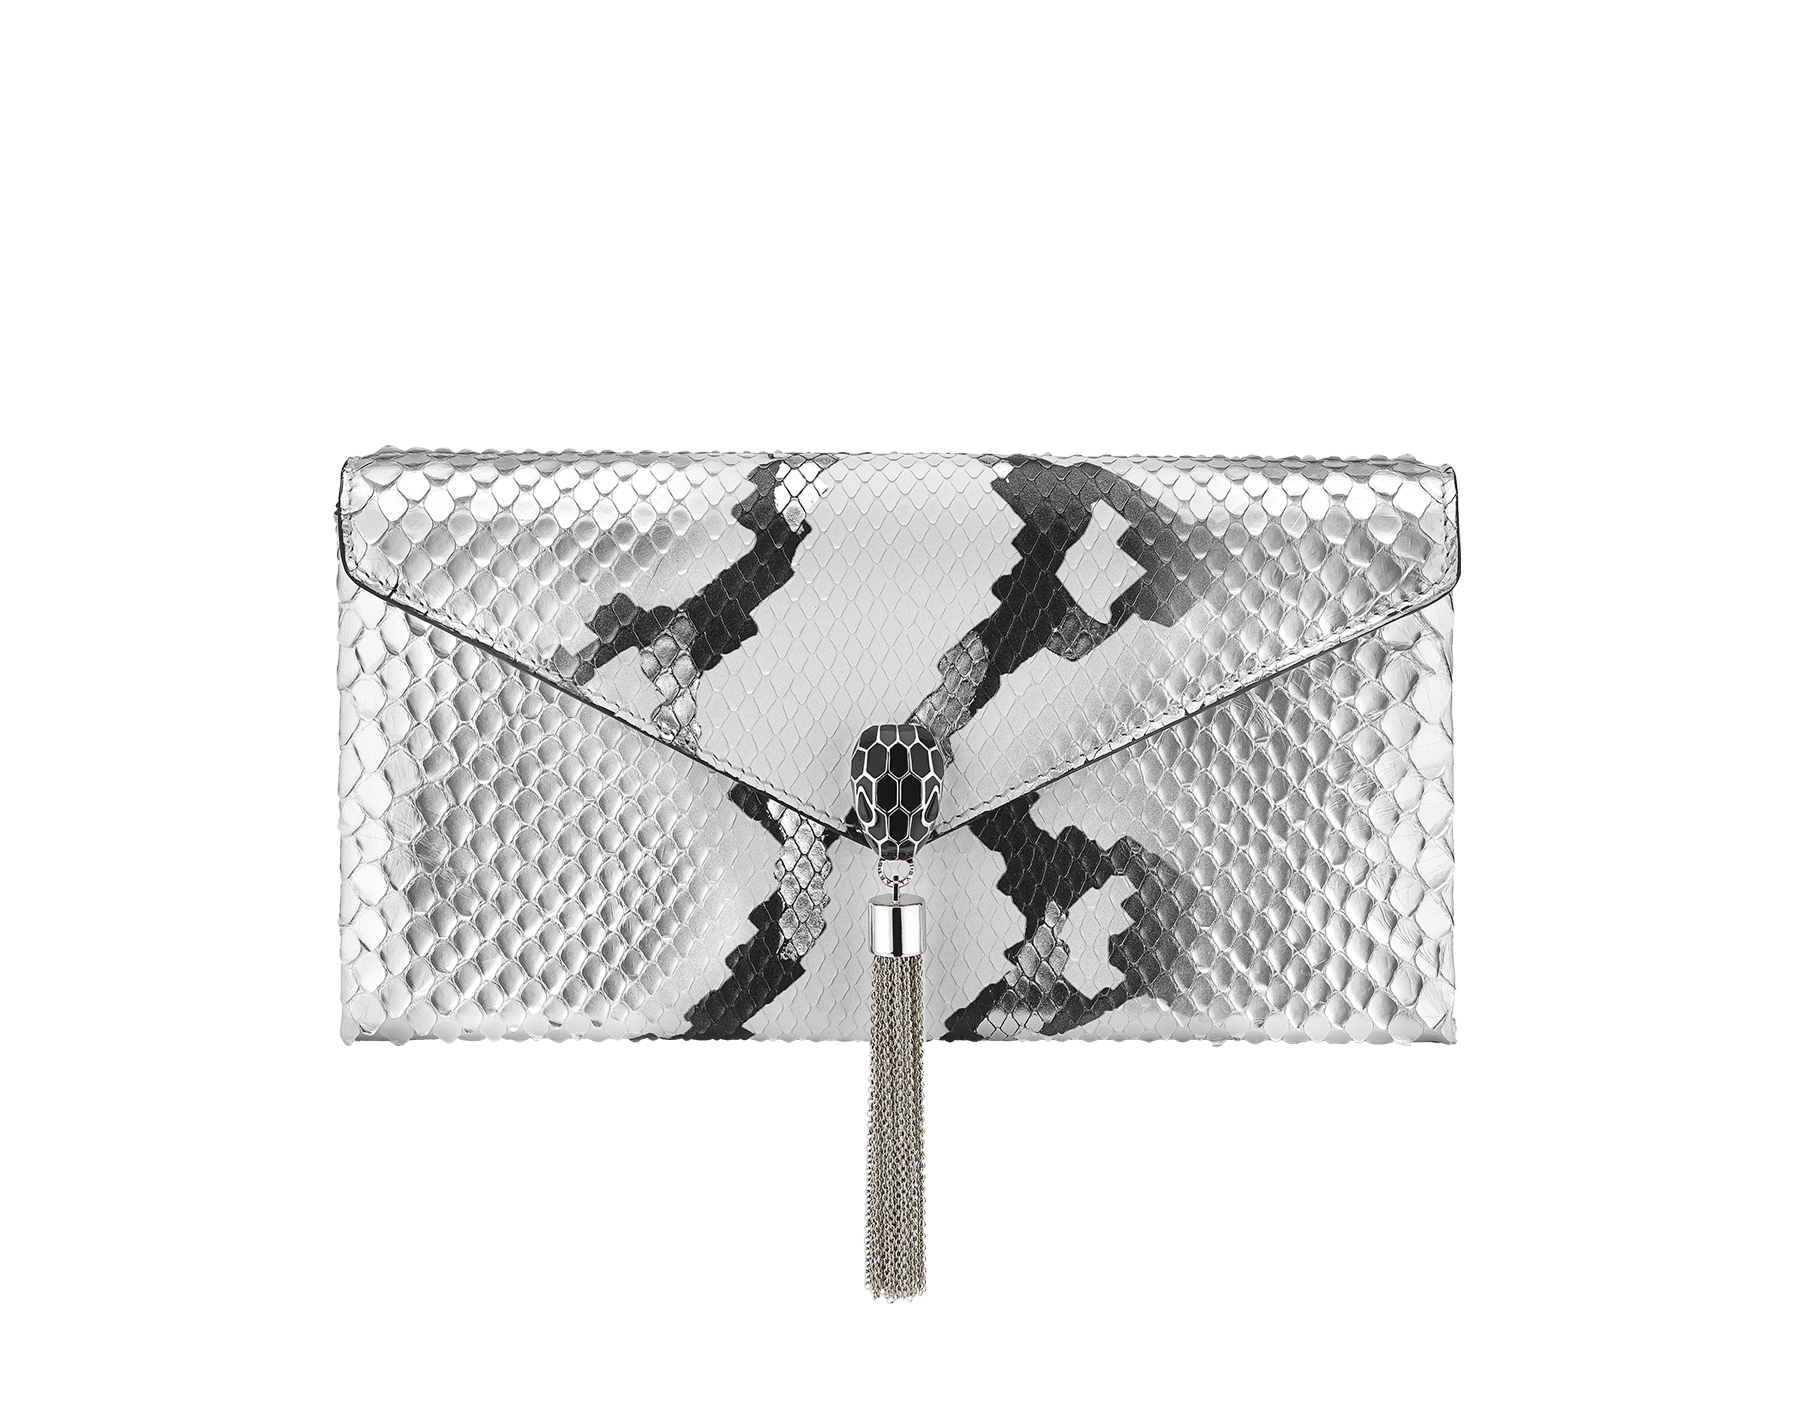 """Serpenti"" evening clutch bag in white and silver Ice Glam python skin. Iconic snake head stud closure with tassel in palladium plated brass enriched with black shiny enamel and black onyx eyes. 288976 image 1"